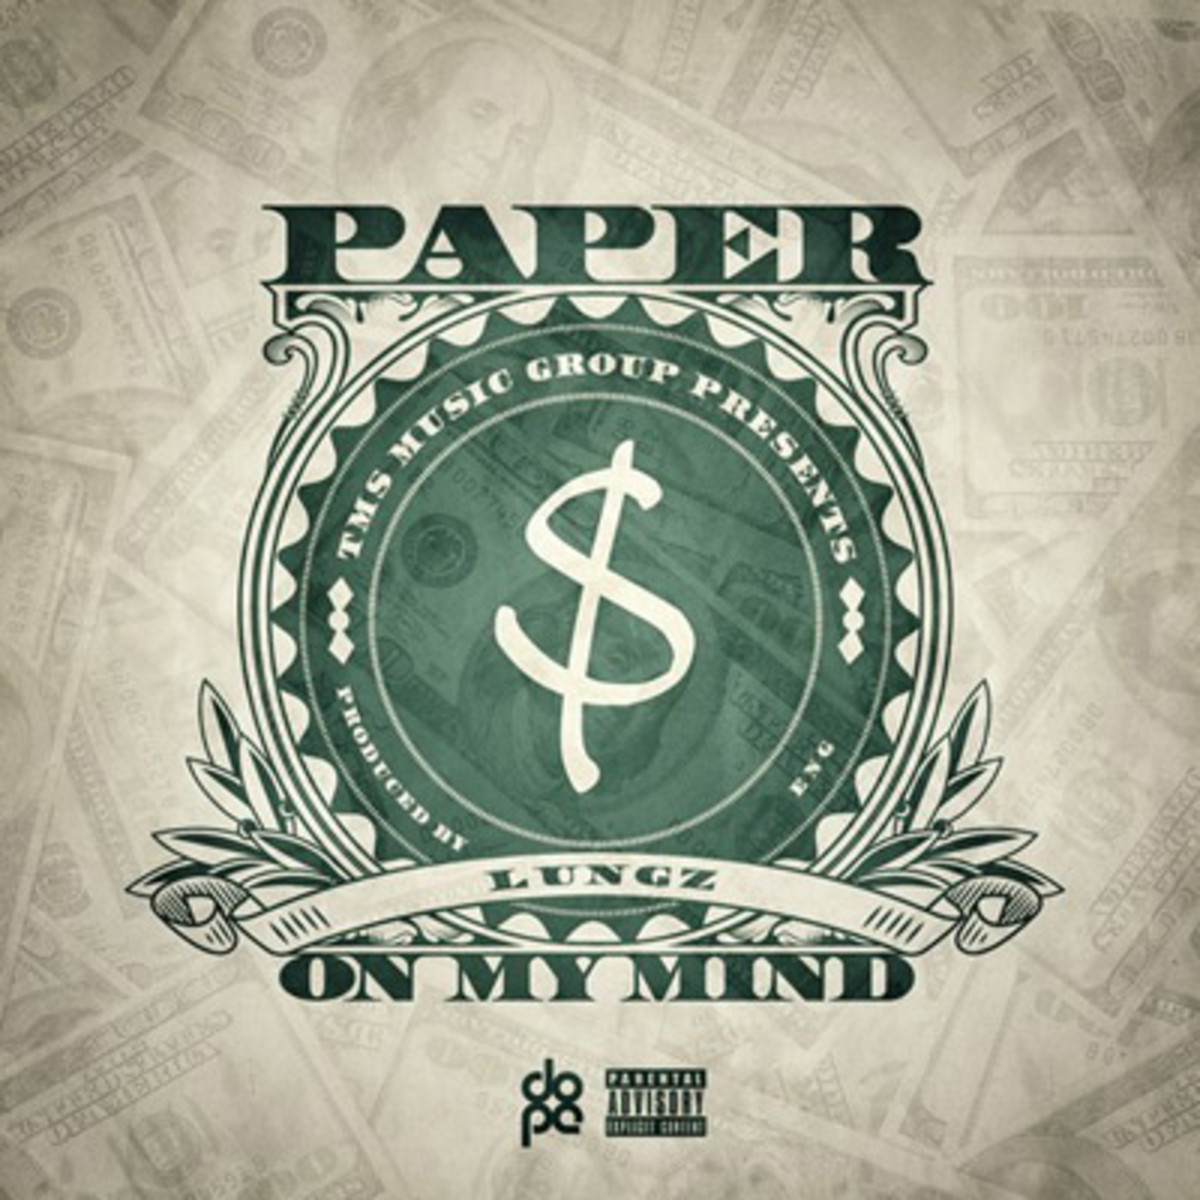 lungz-paperonmy.jpg